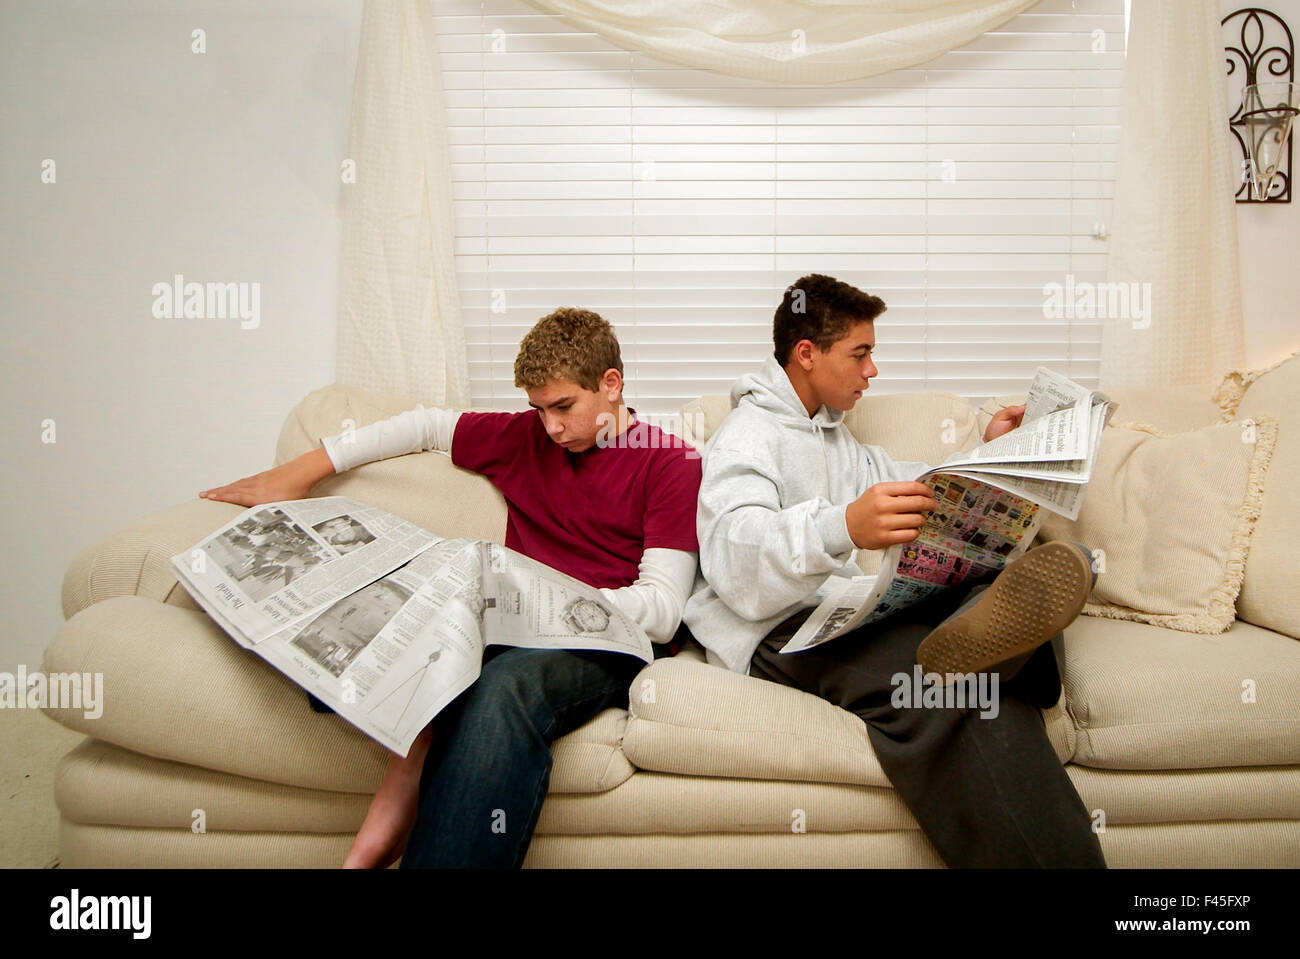 Two teens in sofa